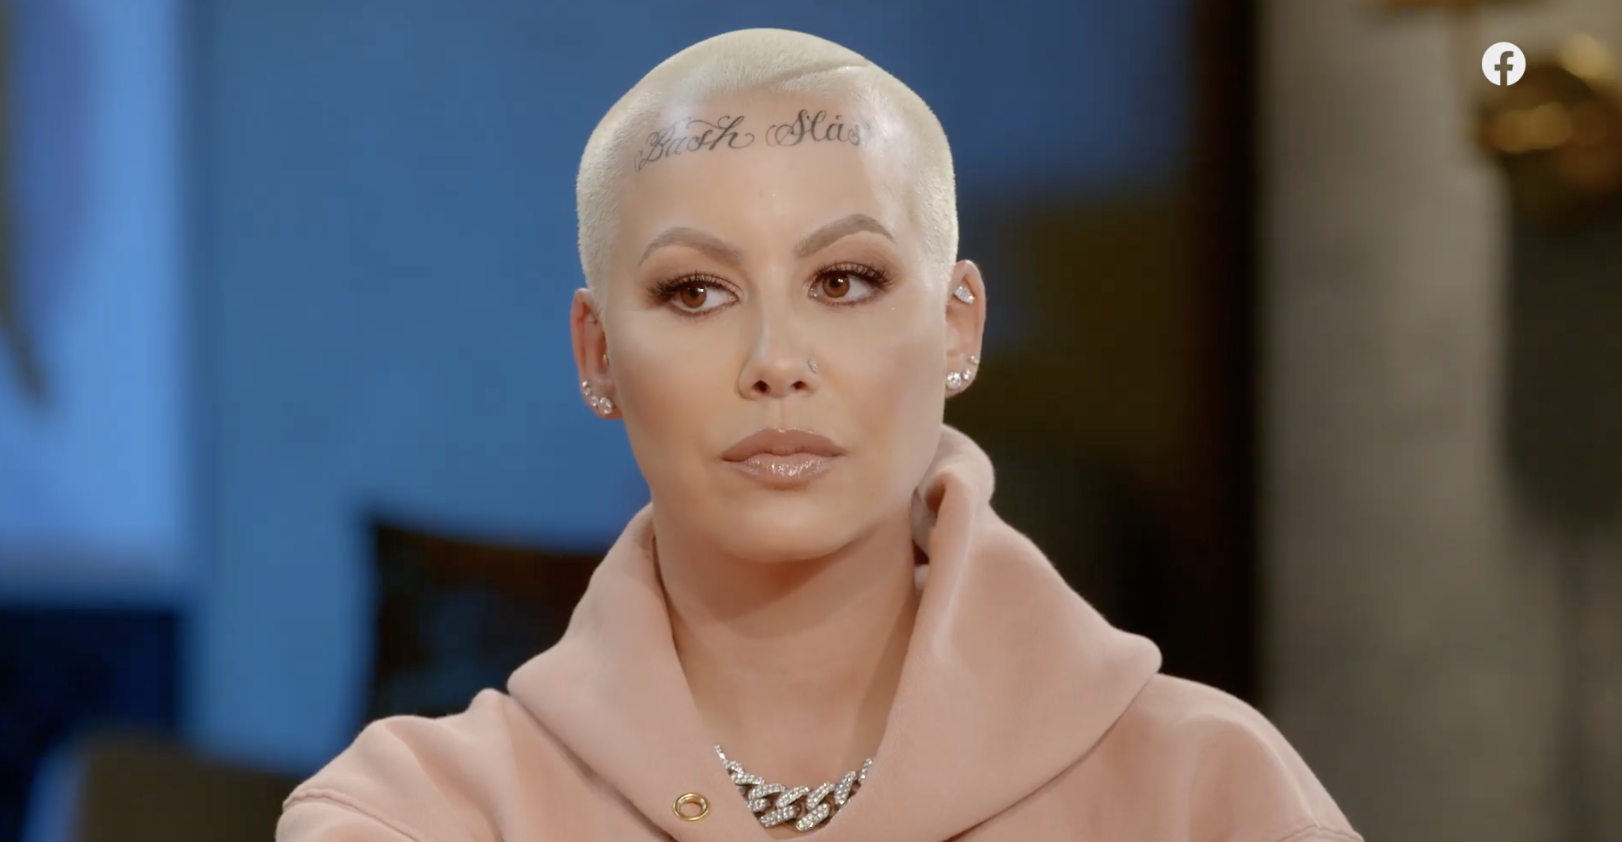 Amber Rose on Red Table Talk says shes teaching her son